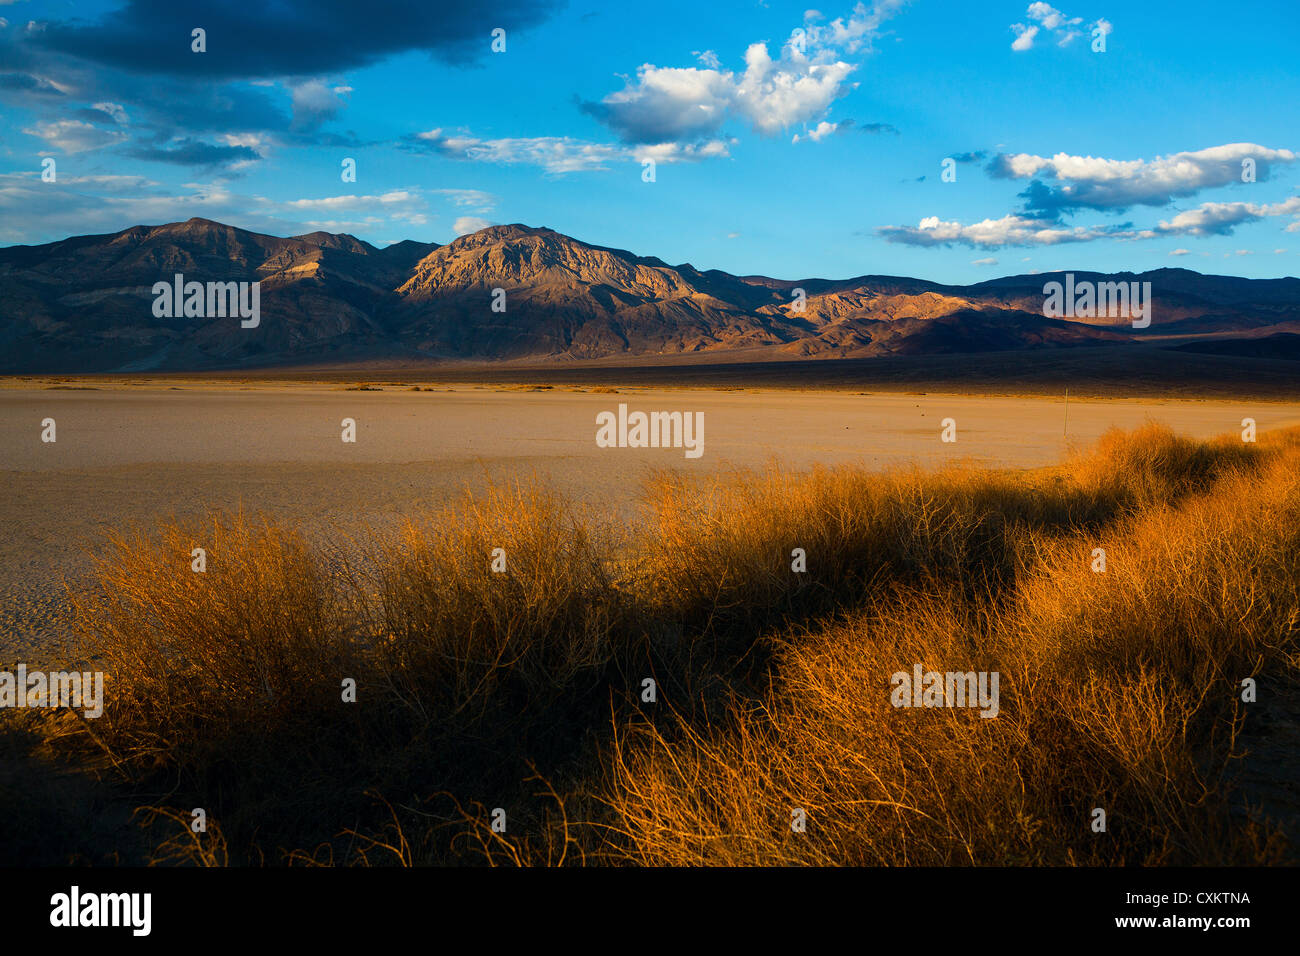 Death Valley National Park at sunset - Stock Image